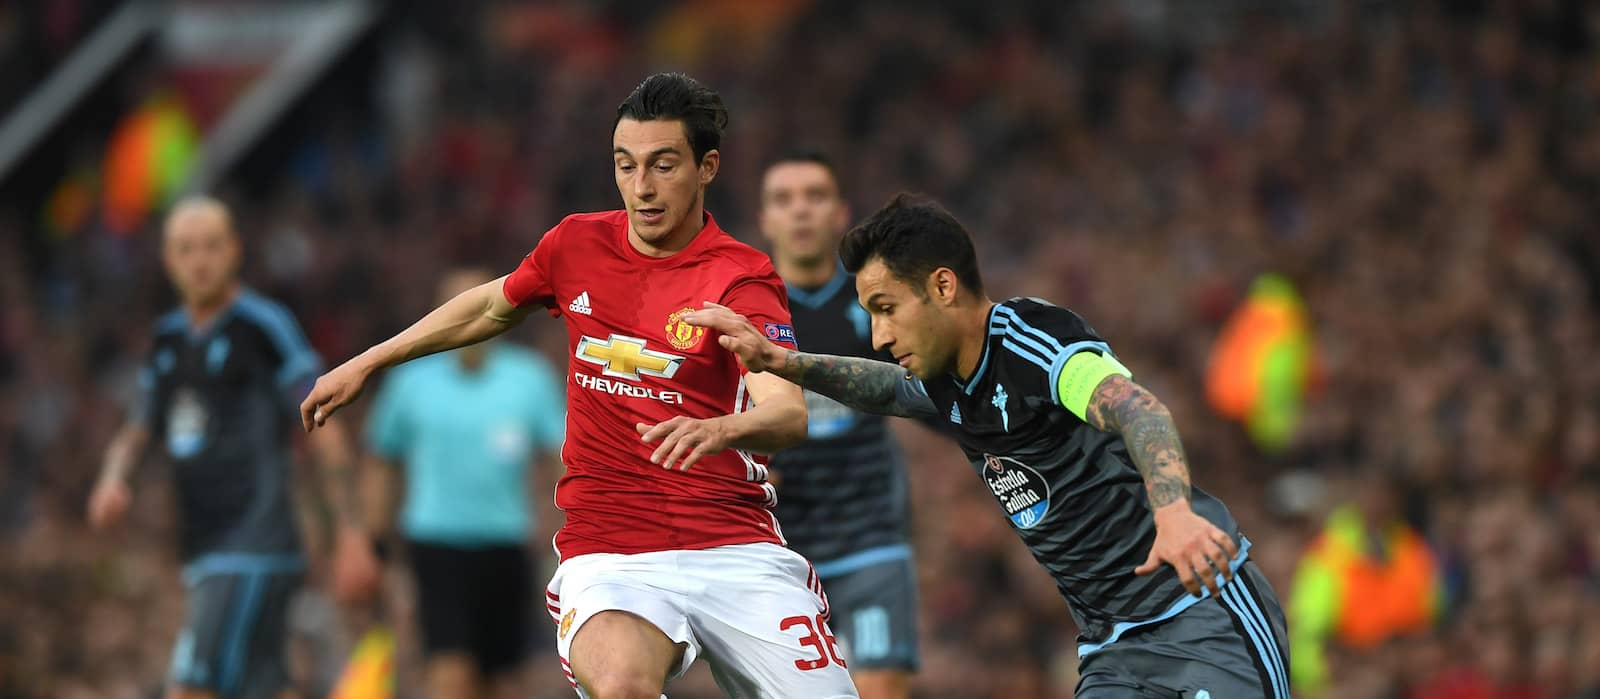 Matteo Darmian confirms he is off the market at Man United